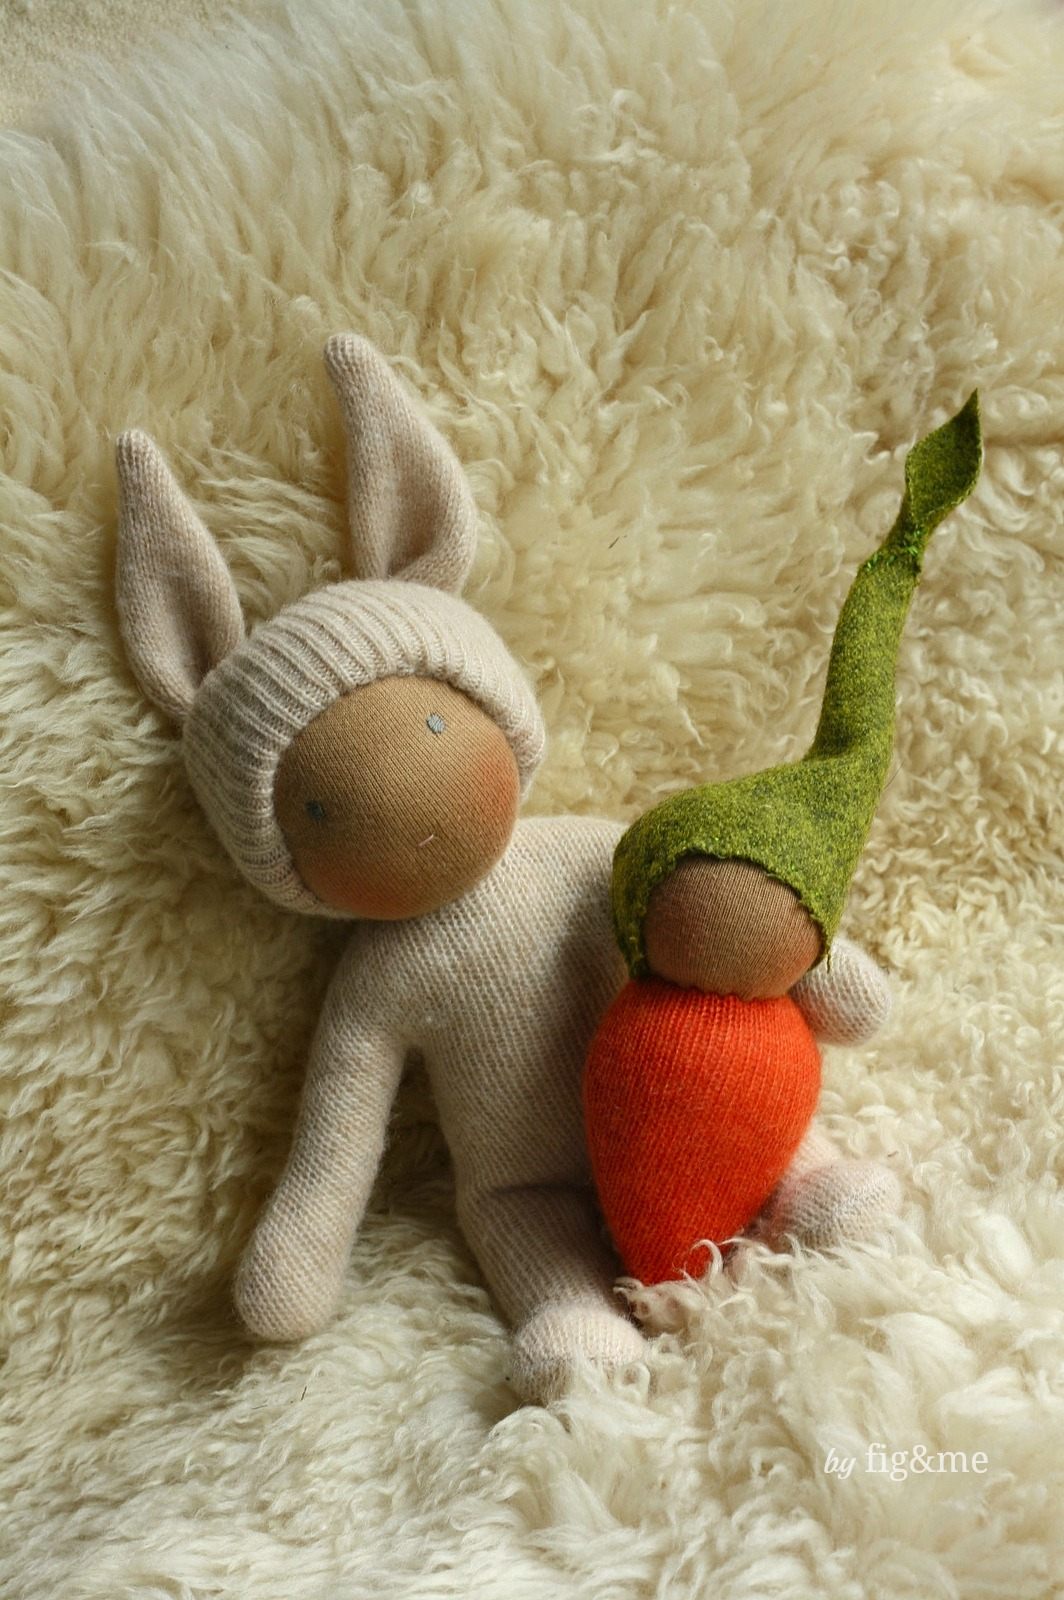 Wee Bunny and Baby Carrot, by Fig&me